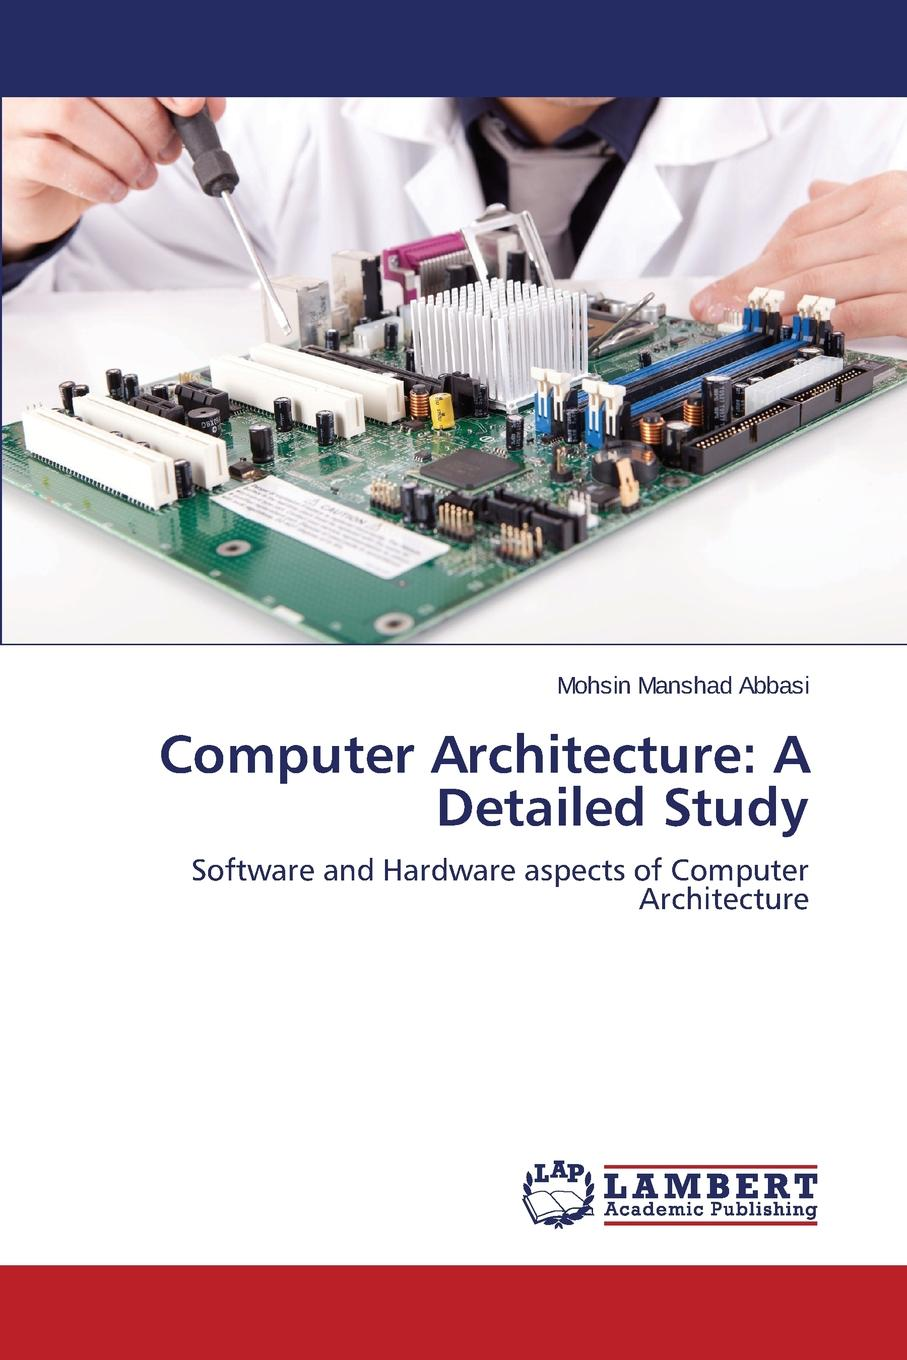 Abbasi Mohsin Manshad Computer Architecture. A Detailed Study